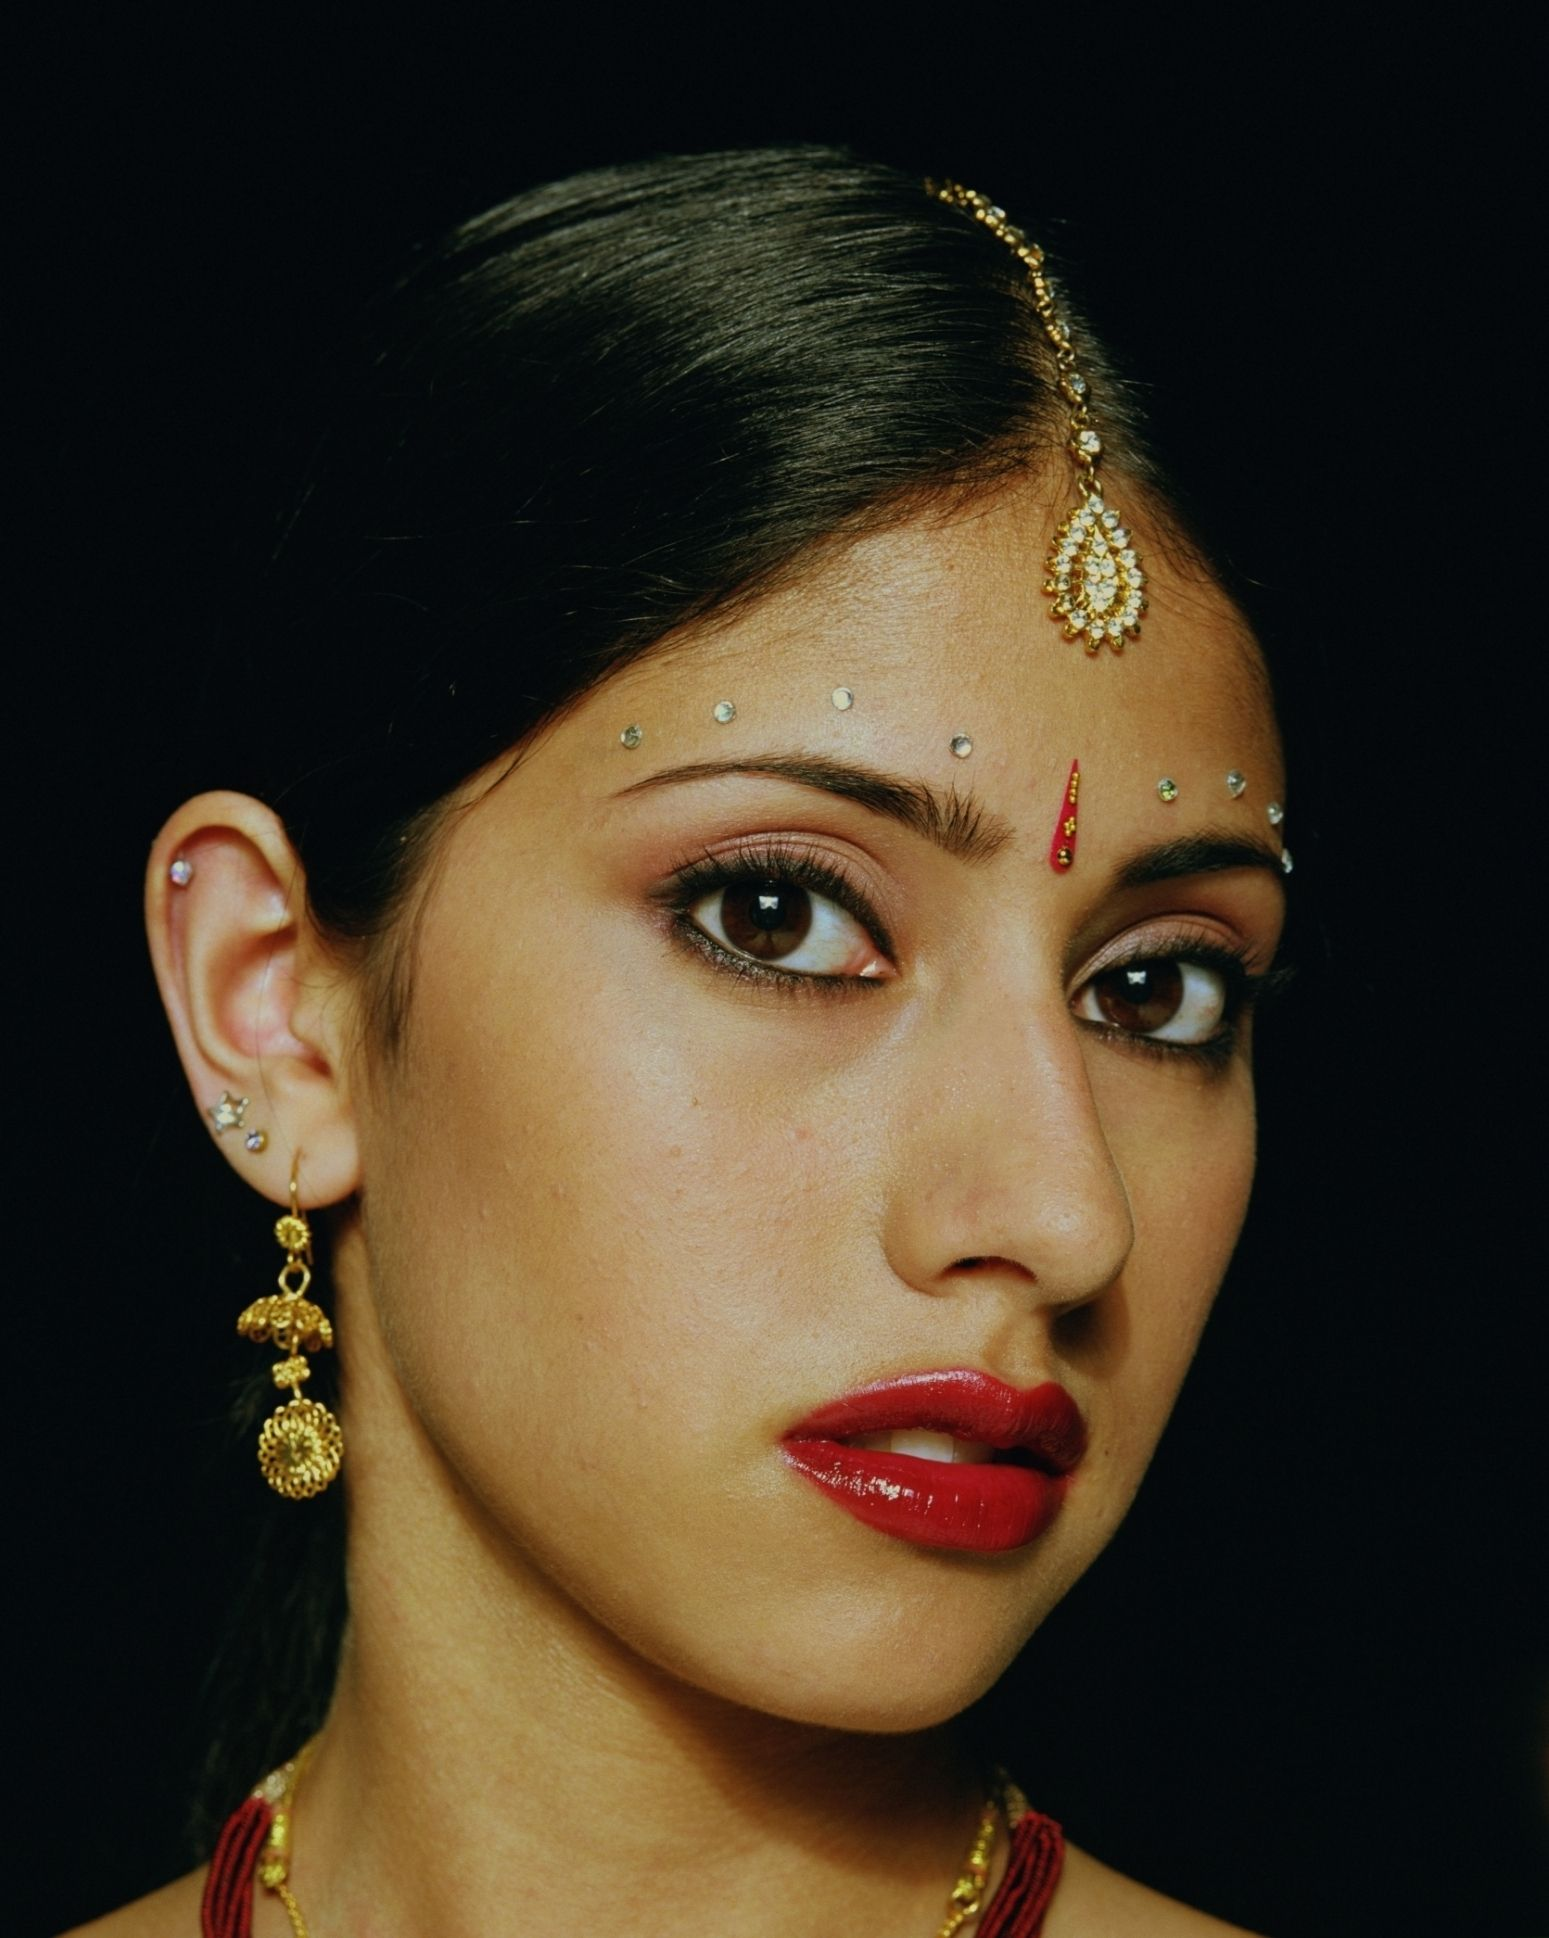 A Bindi Is Forehead Decoration Indians Wear The Red Dots And Jewels They On Their Foreheads Are S